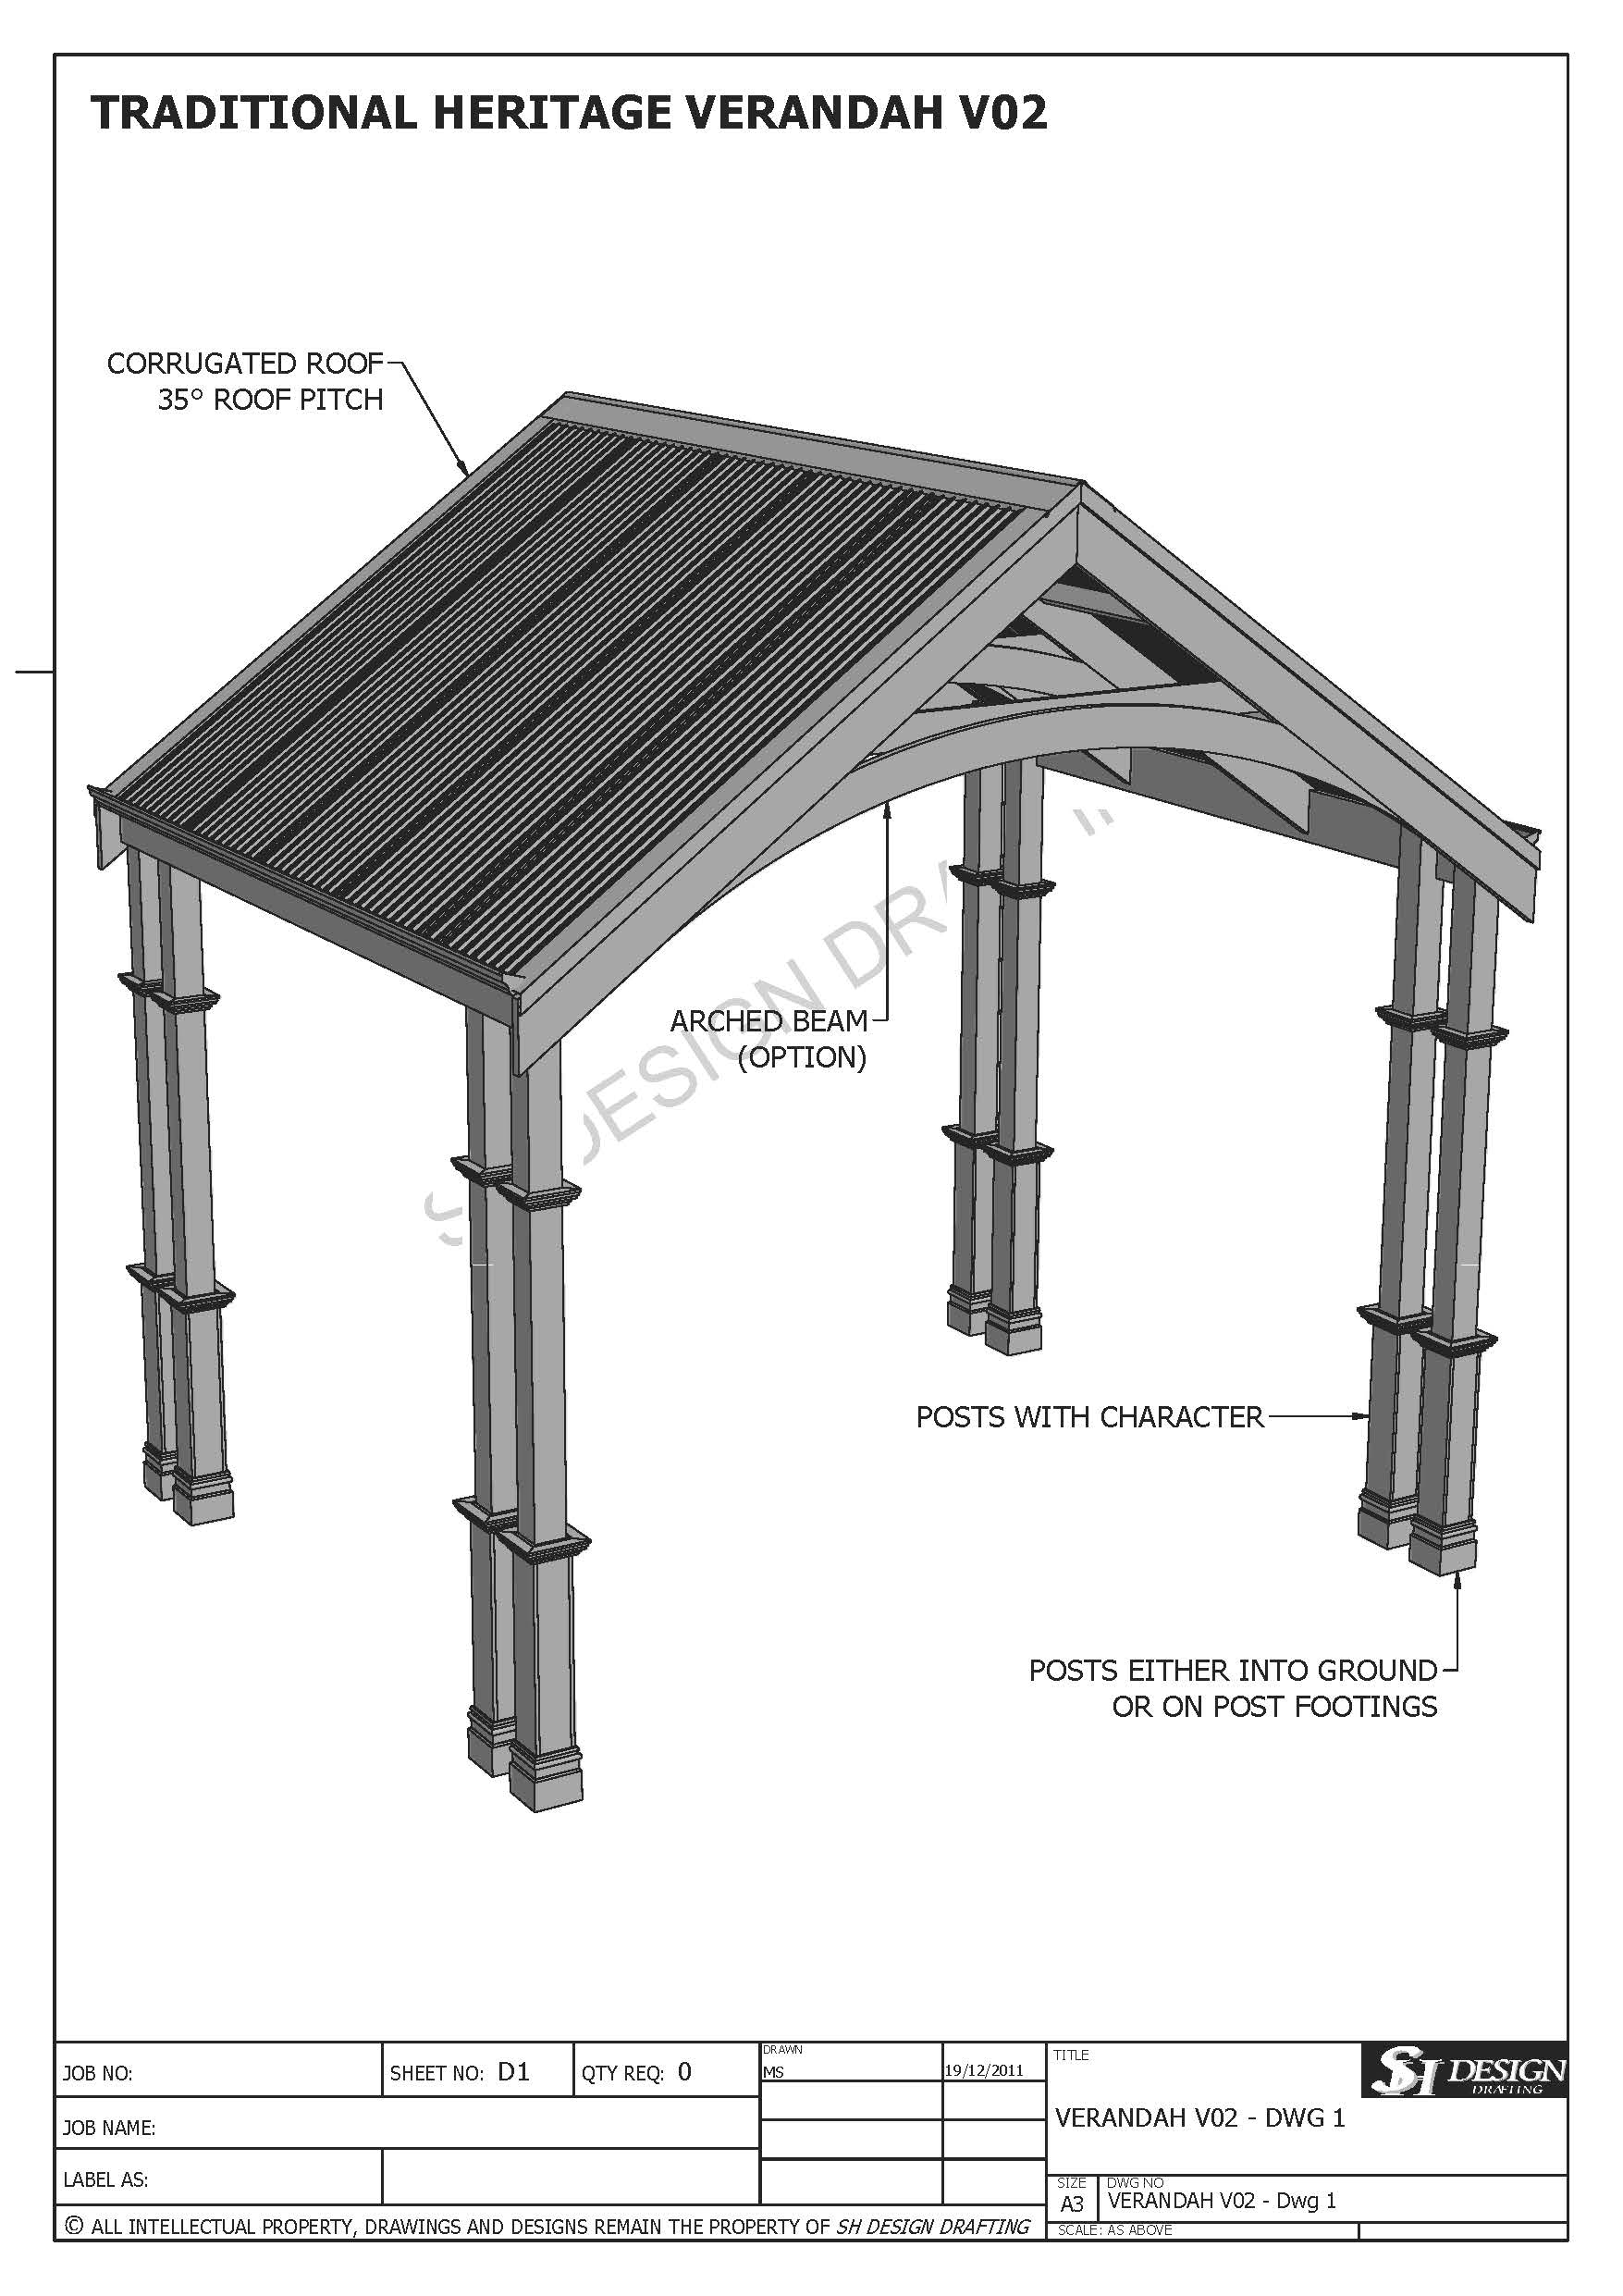 TRADITIONAL HERITAGE CARPORT/VERANDAH V02 (Building Plans ONLY)